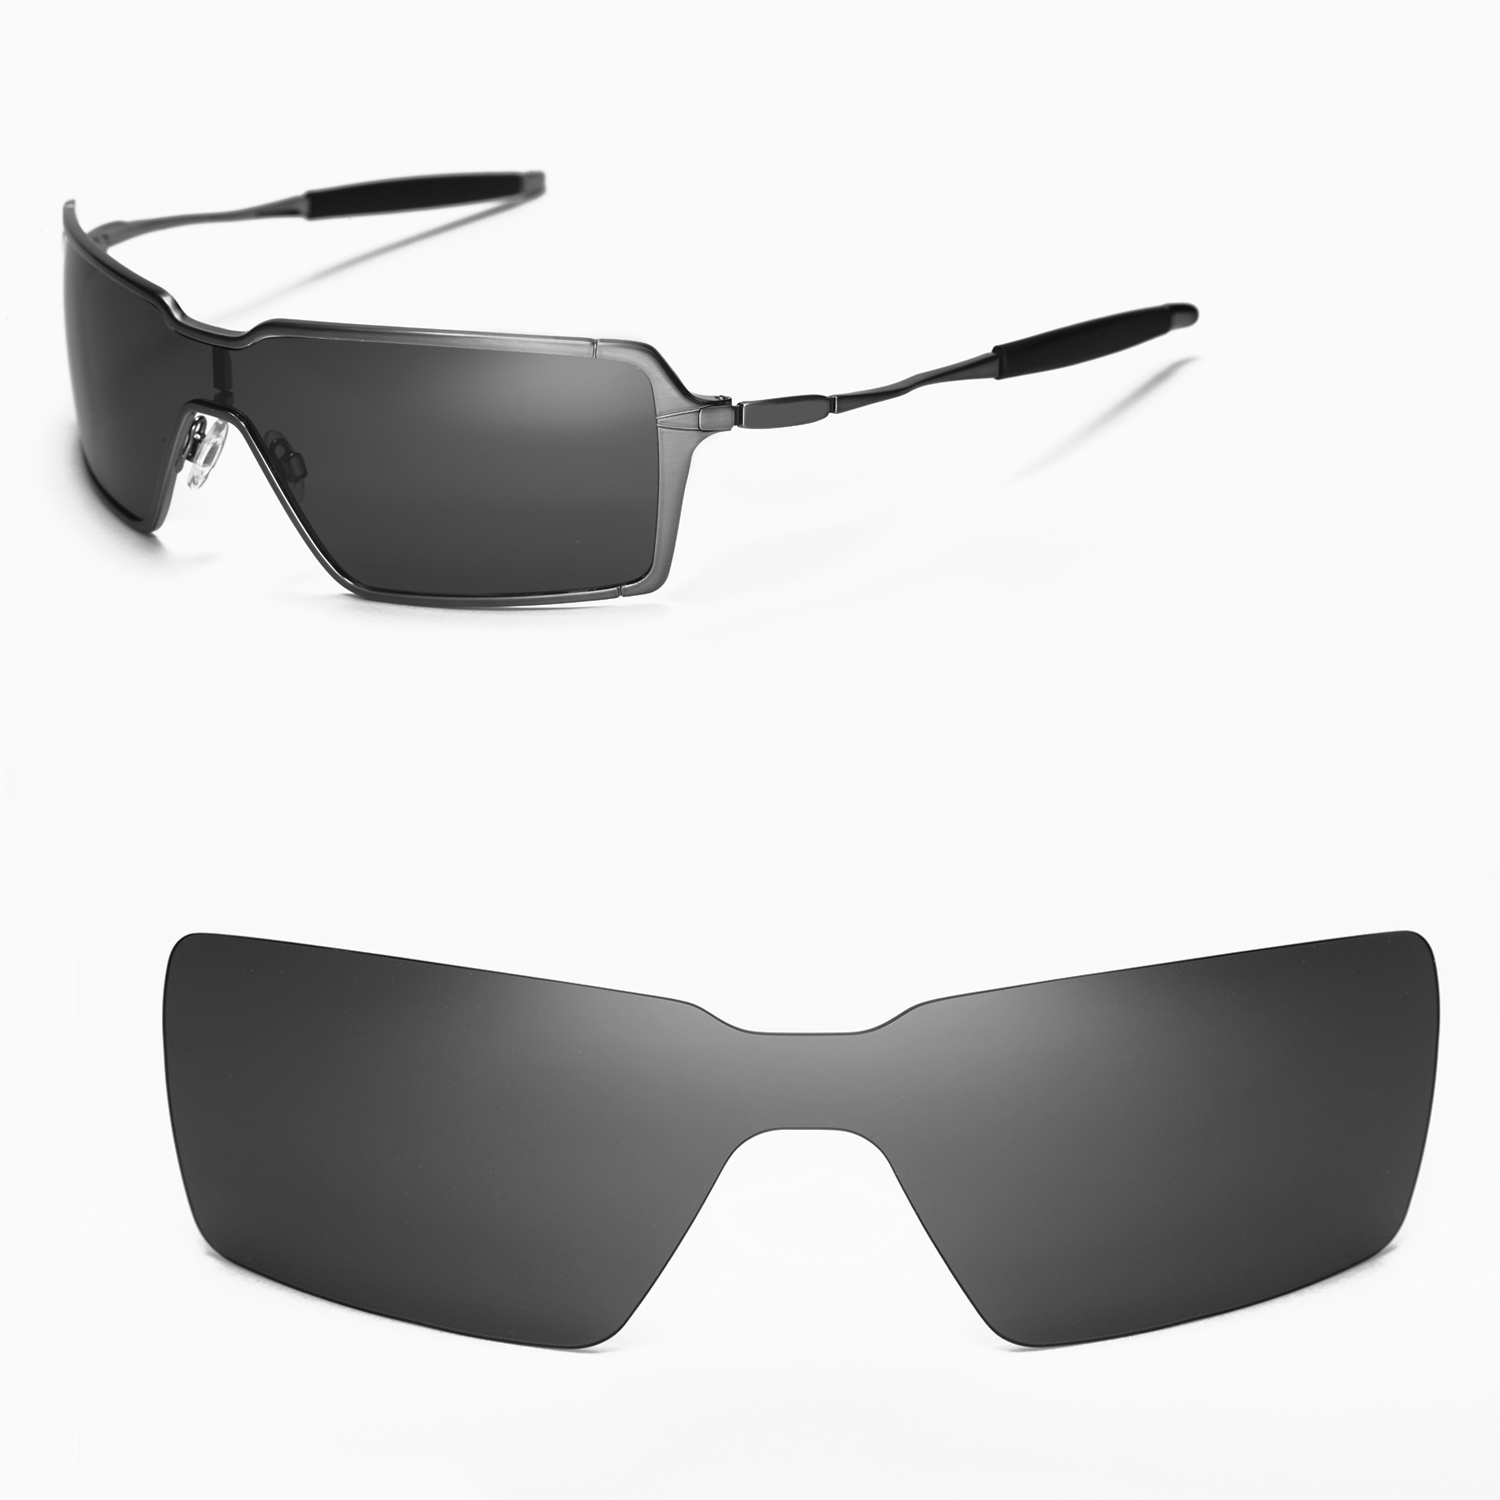 Polarized Glass Lens Sunglasses Tzw9